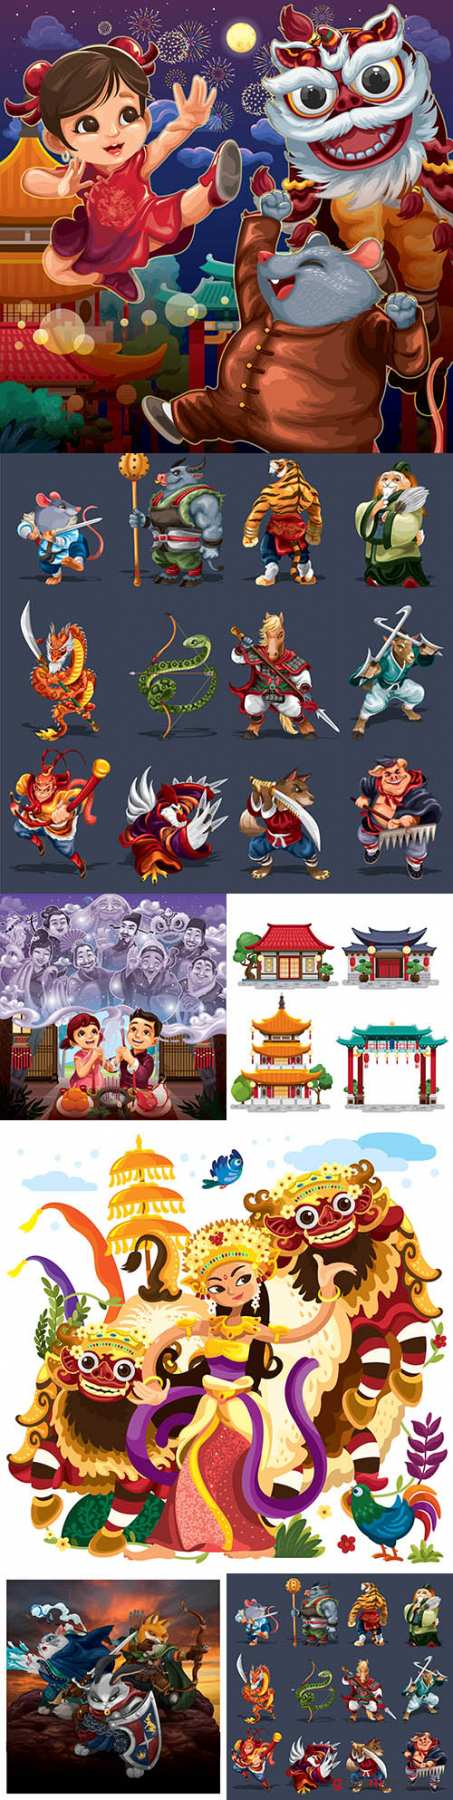 Chinese culture and tradition dsign illustration